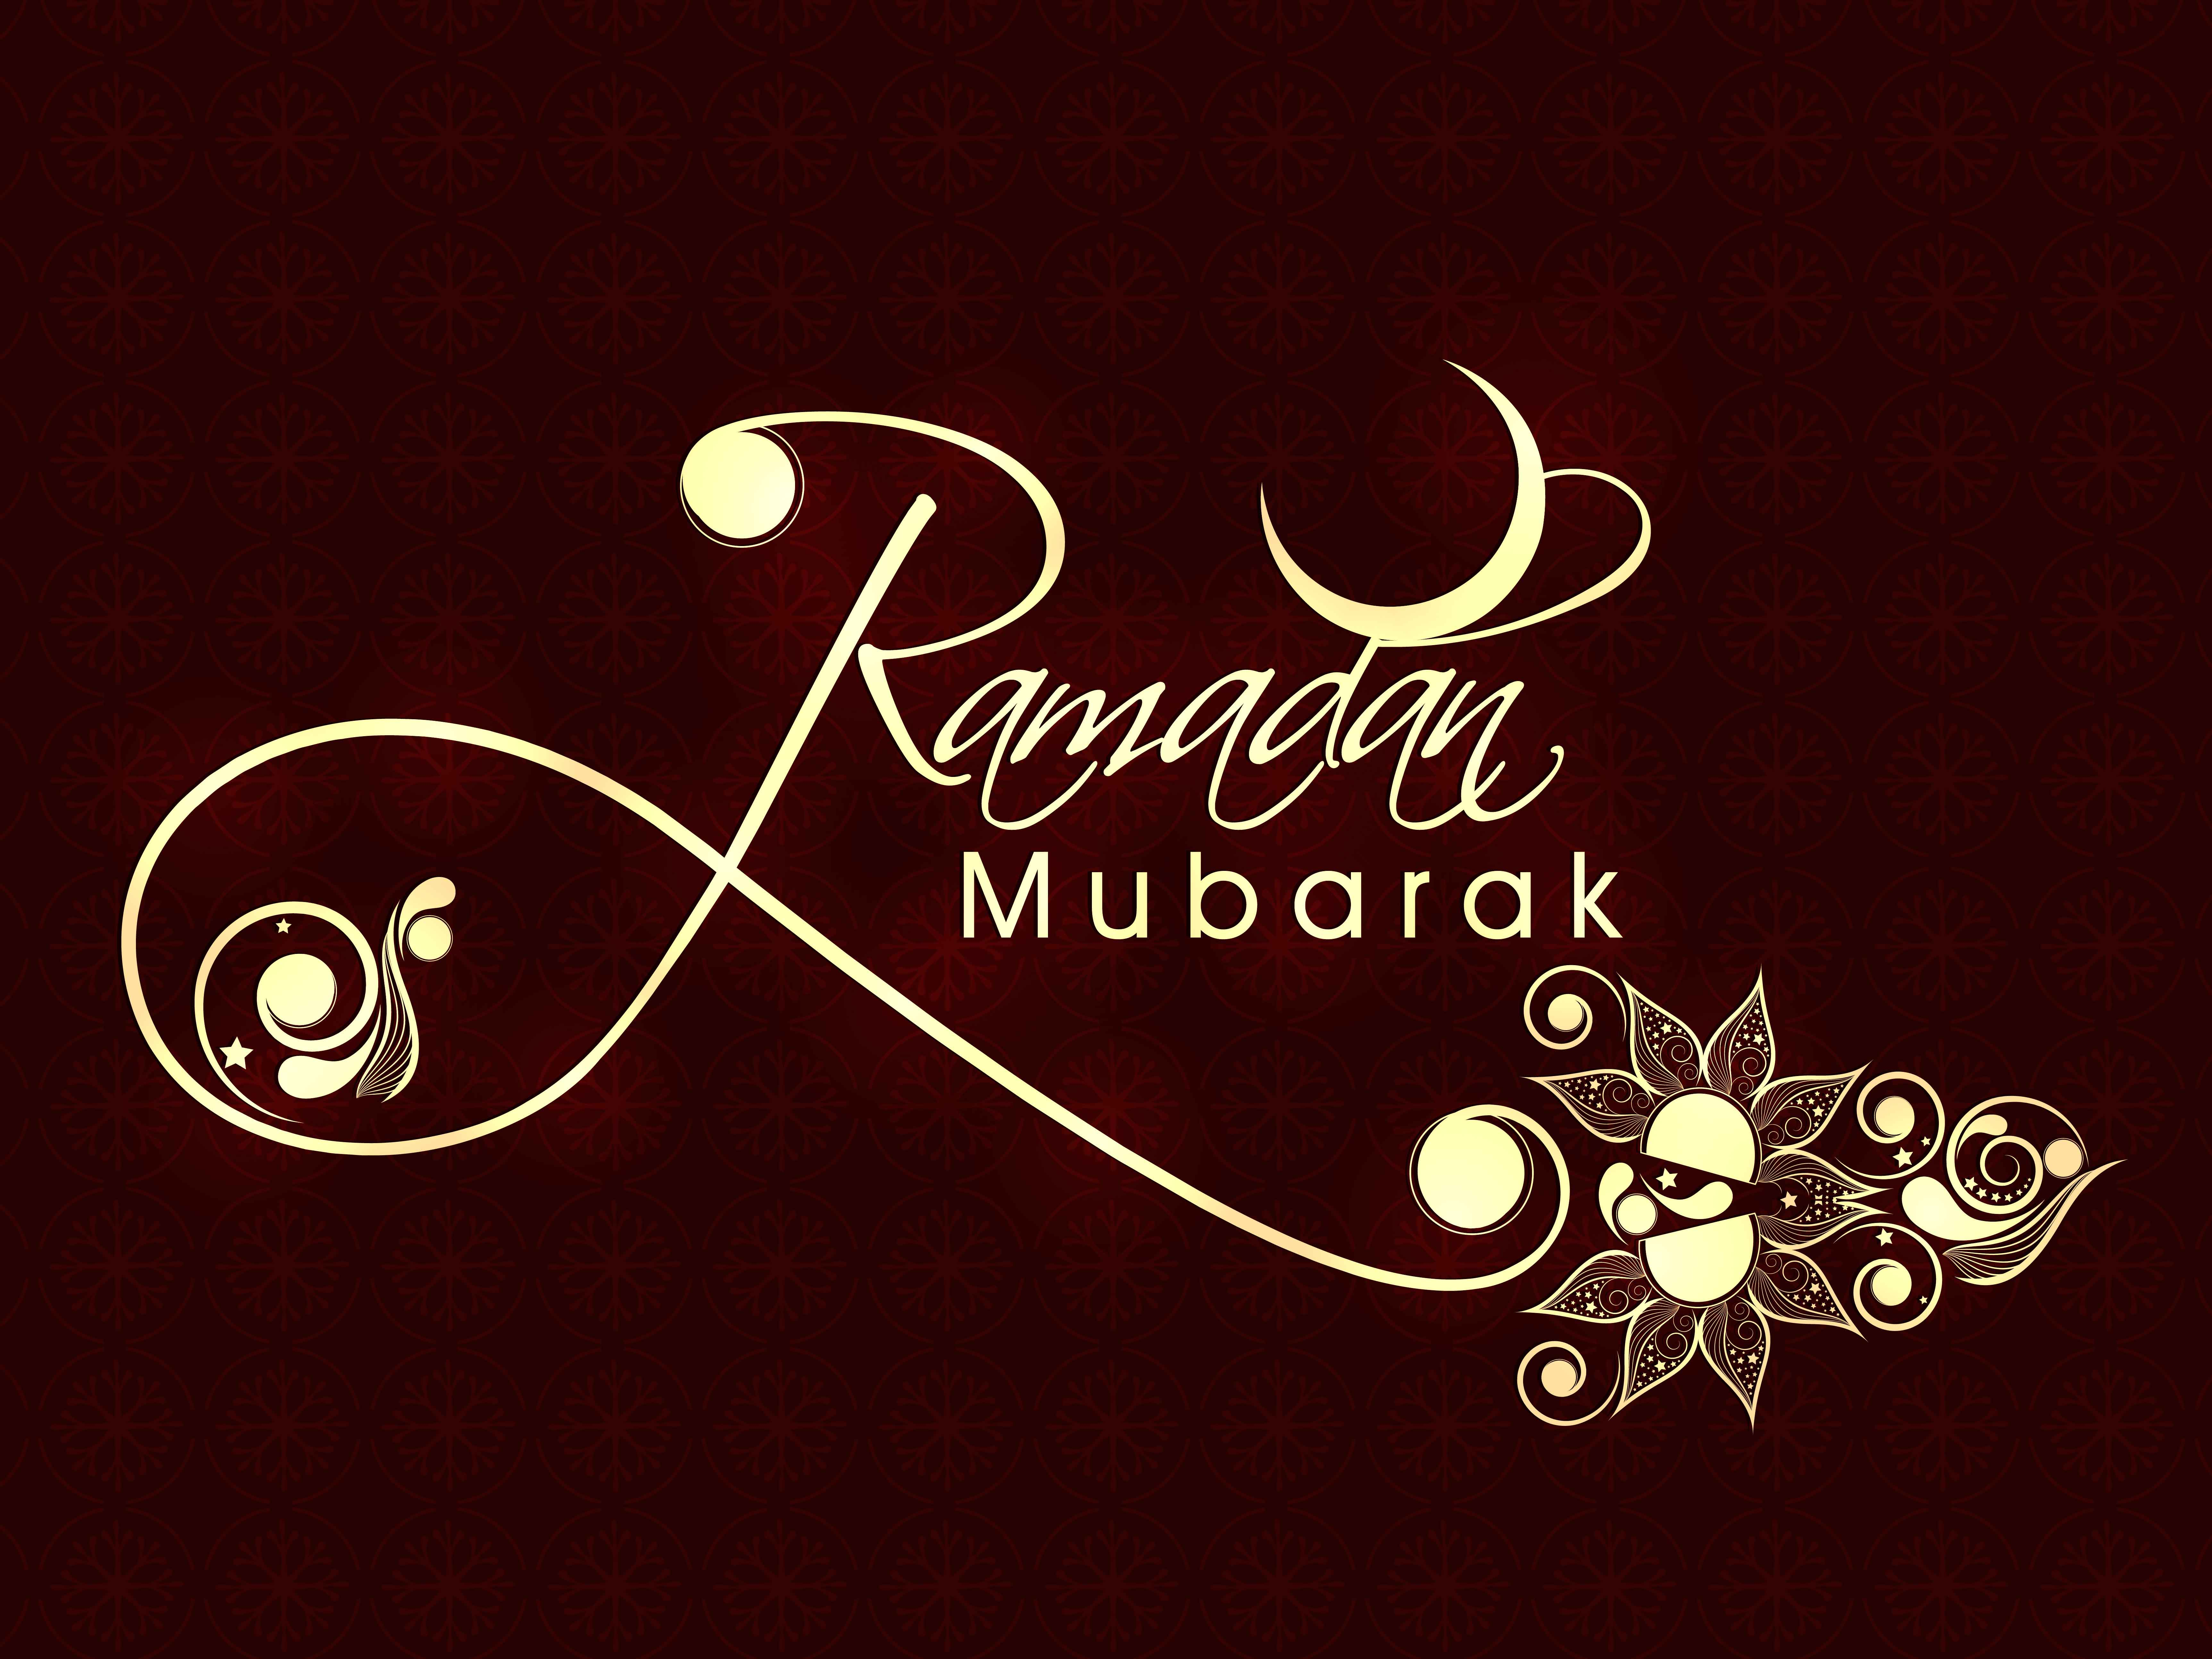 Ramadan Mubarak Wallpaper Posted By John Cunningham